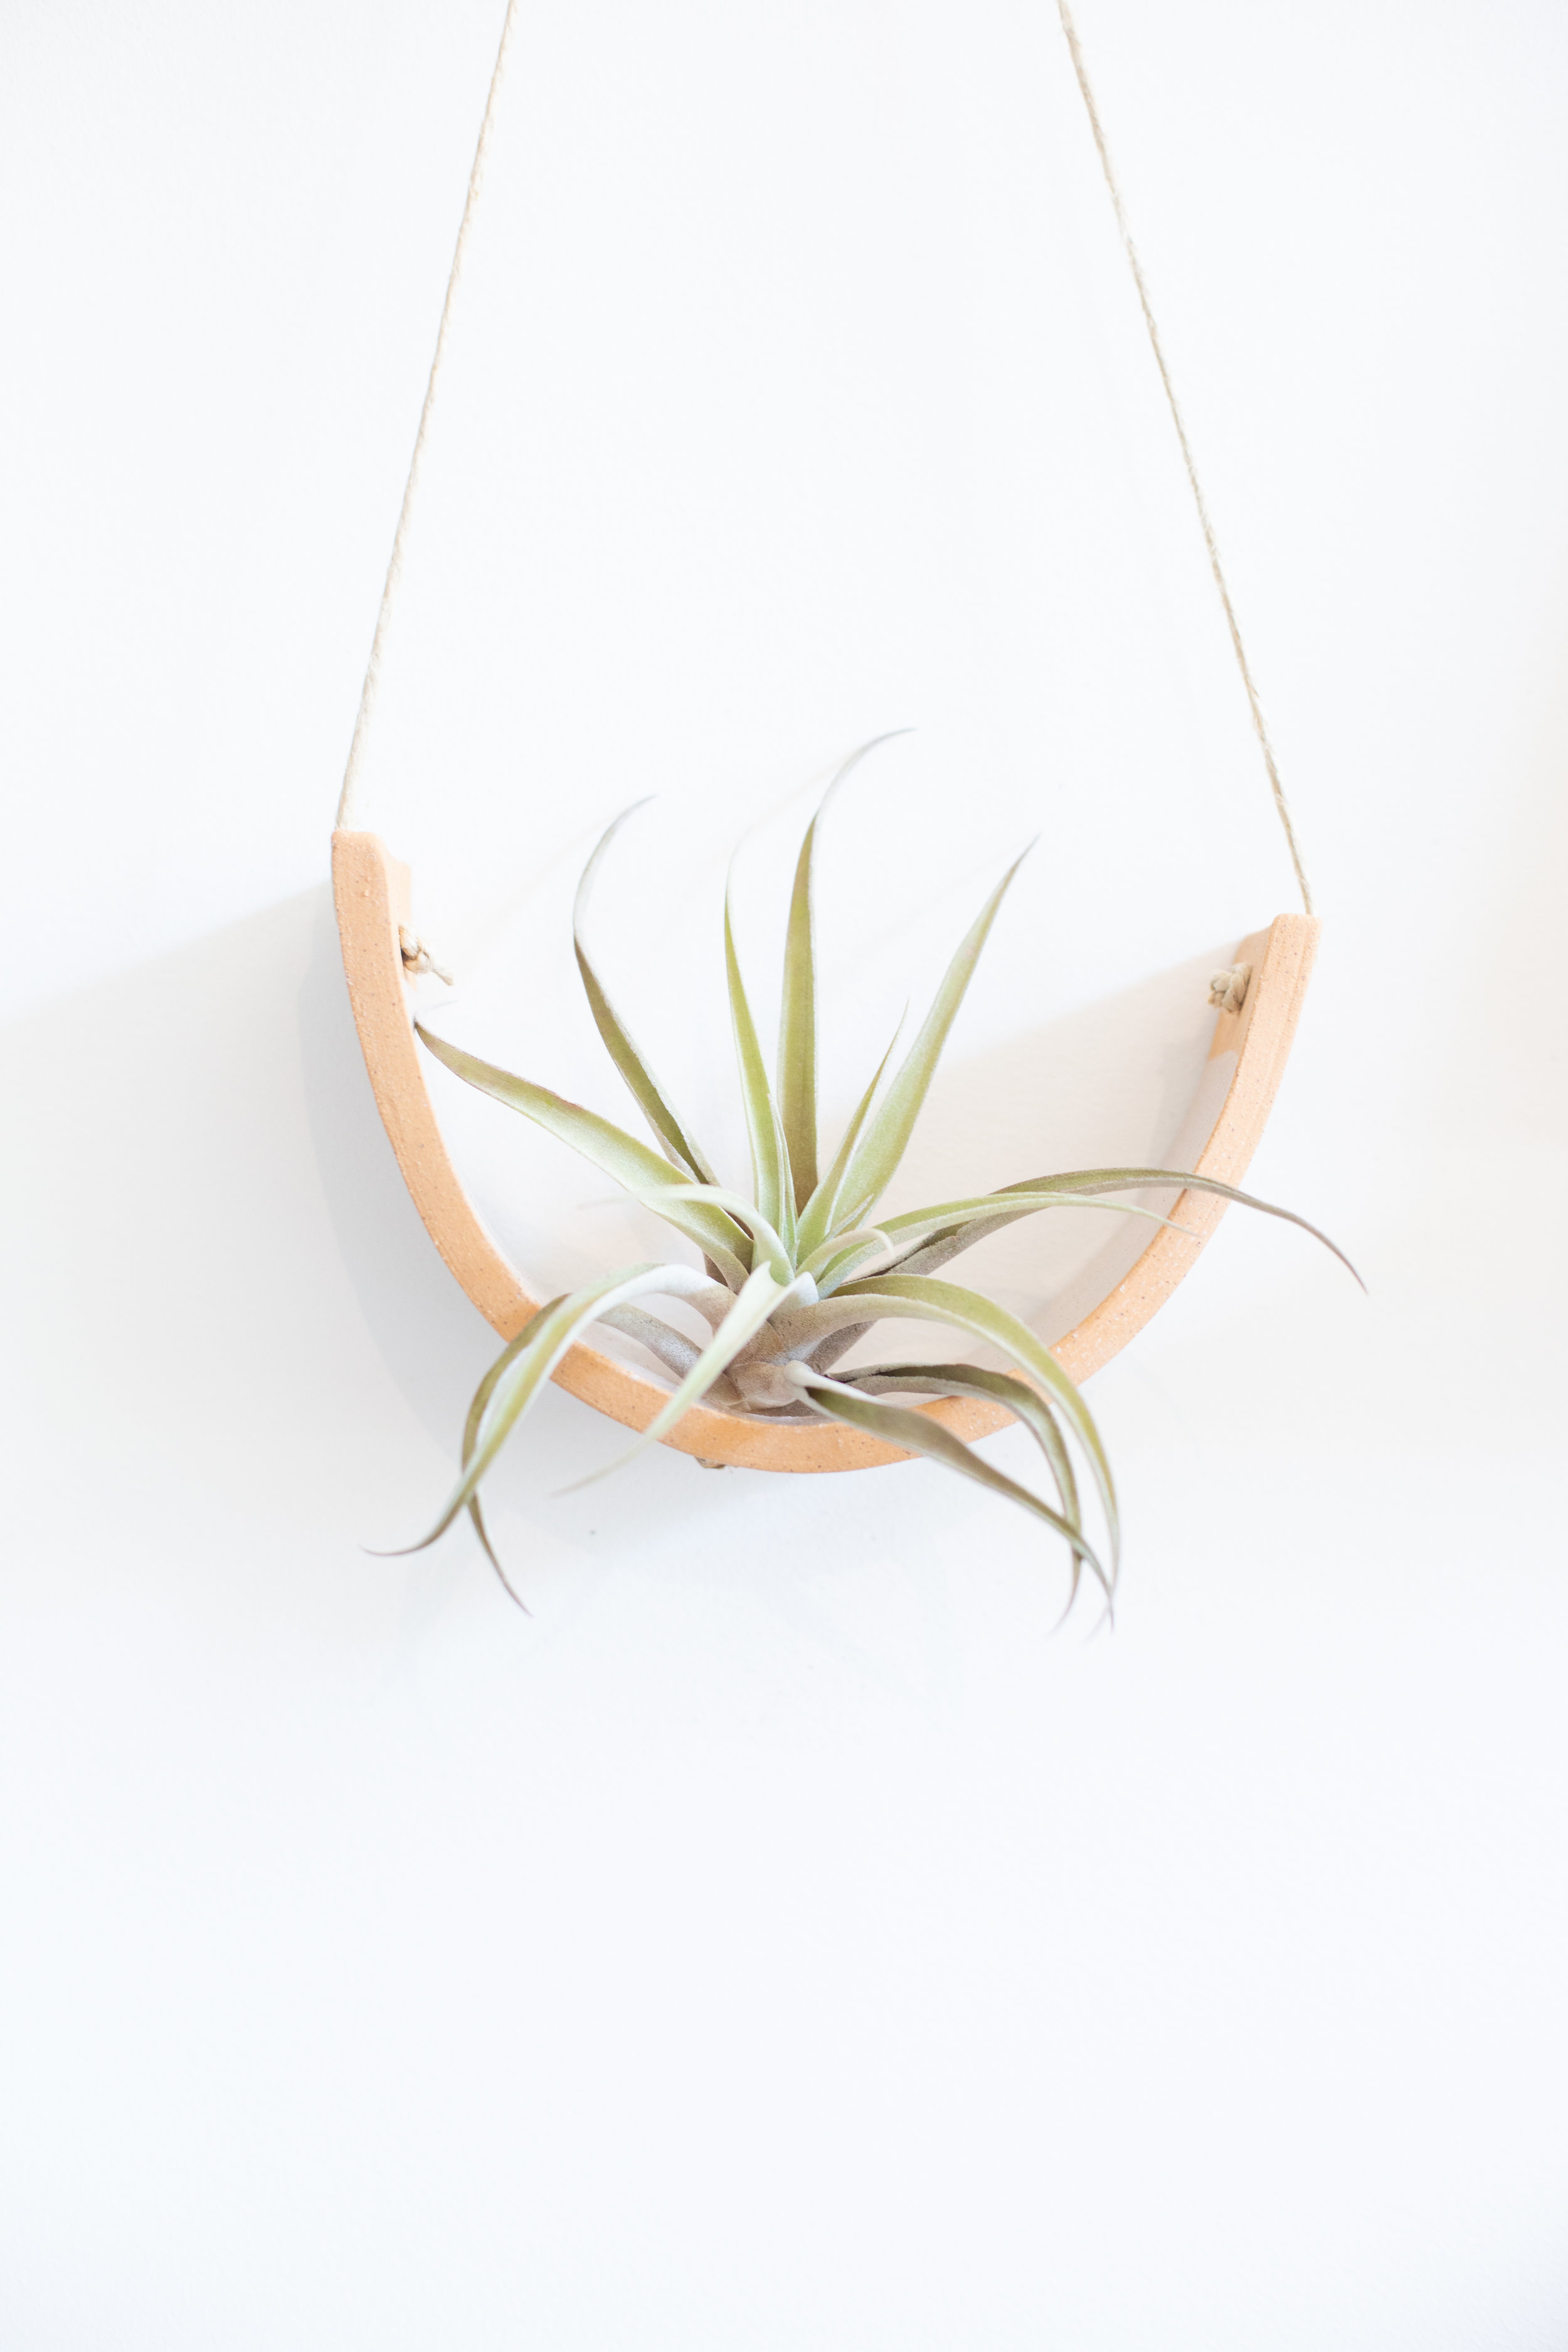 Air plants need more humidity than cacti or succulents. Use some of the tips described in this article to boost the humidity to keep it happy. You can also try keeping your air plants and ferns in a humid-rich room, like a bathroom.